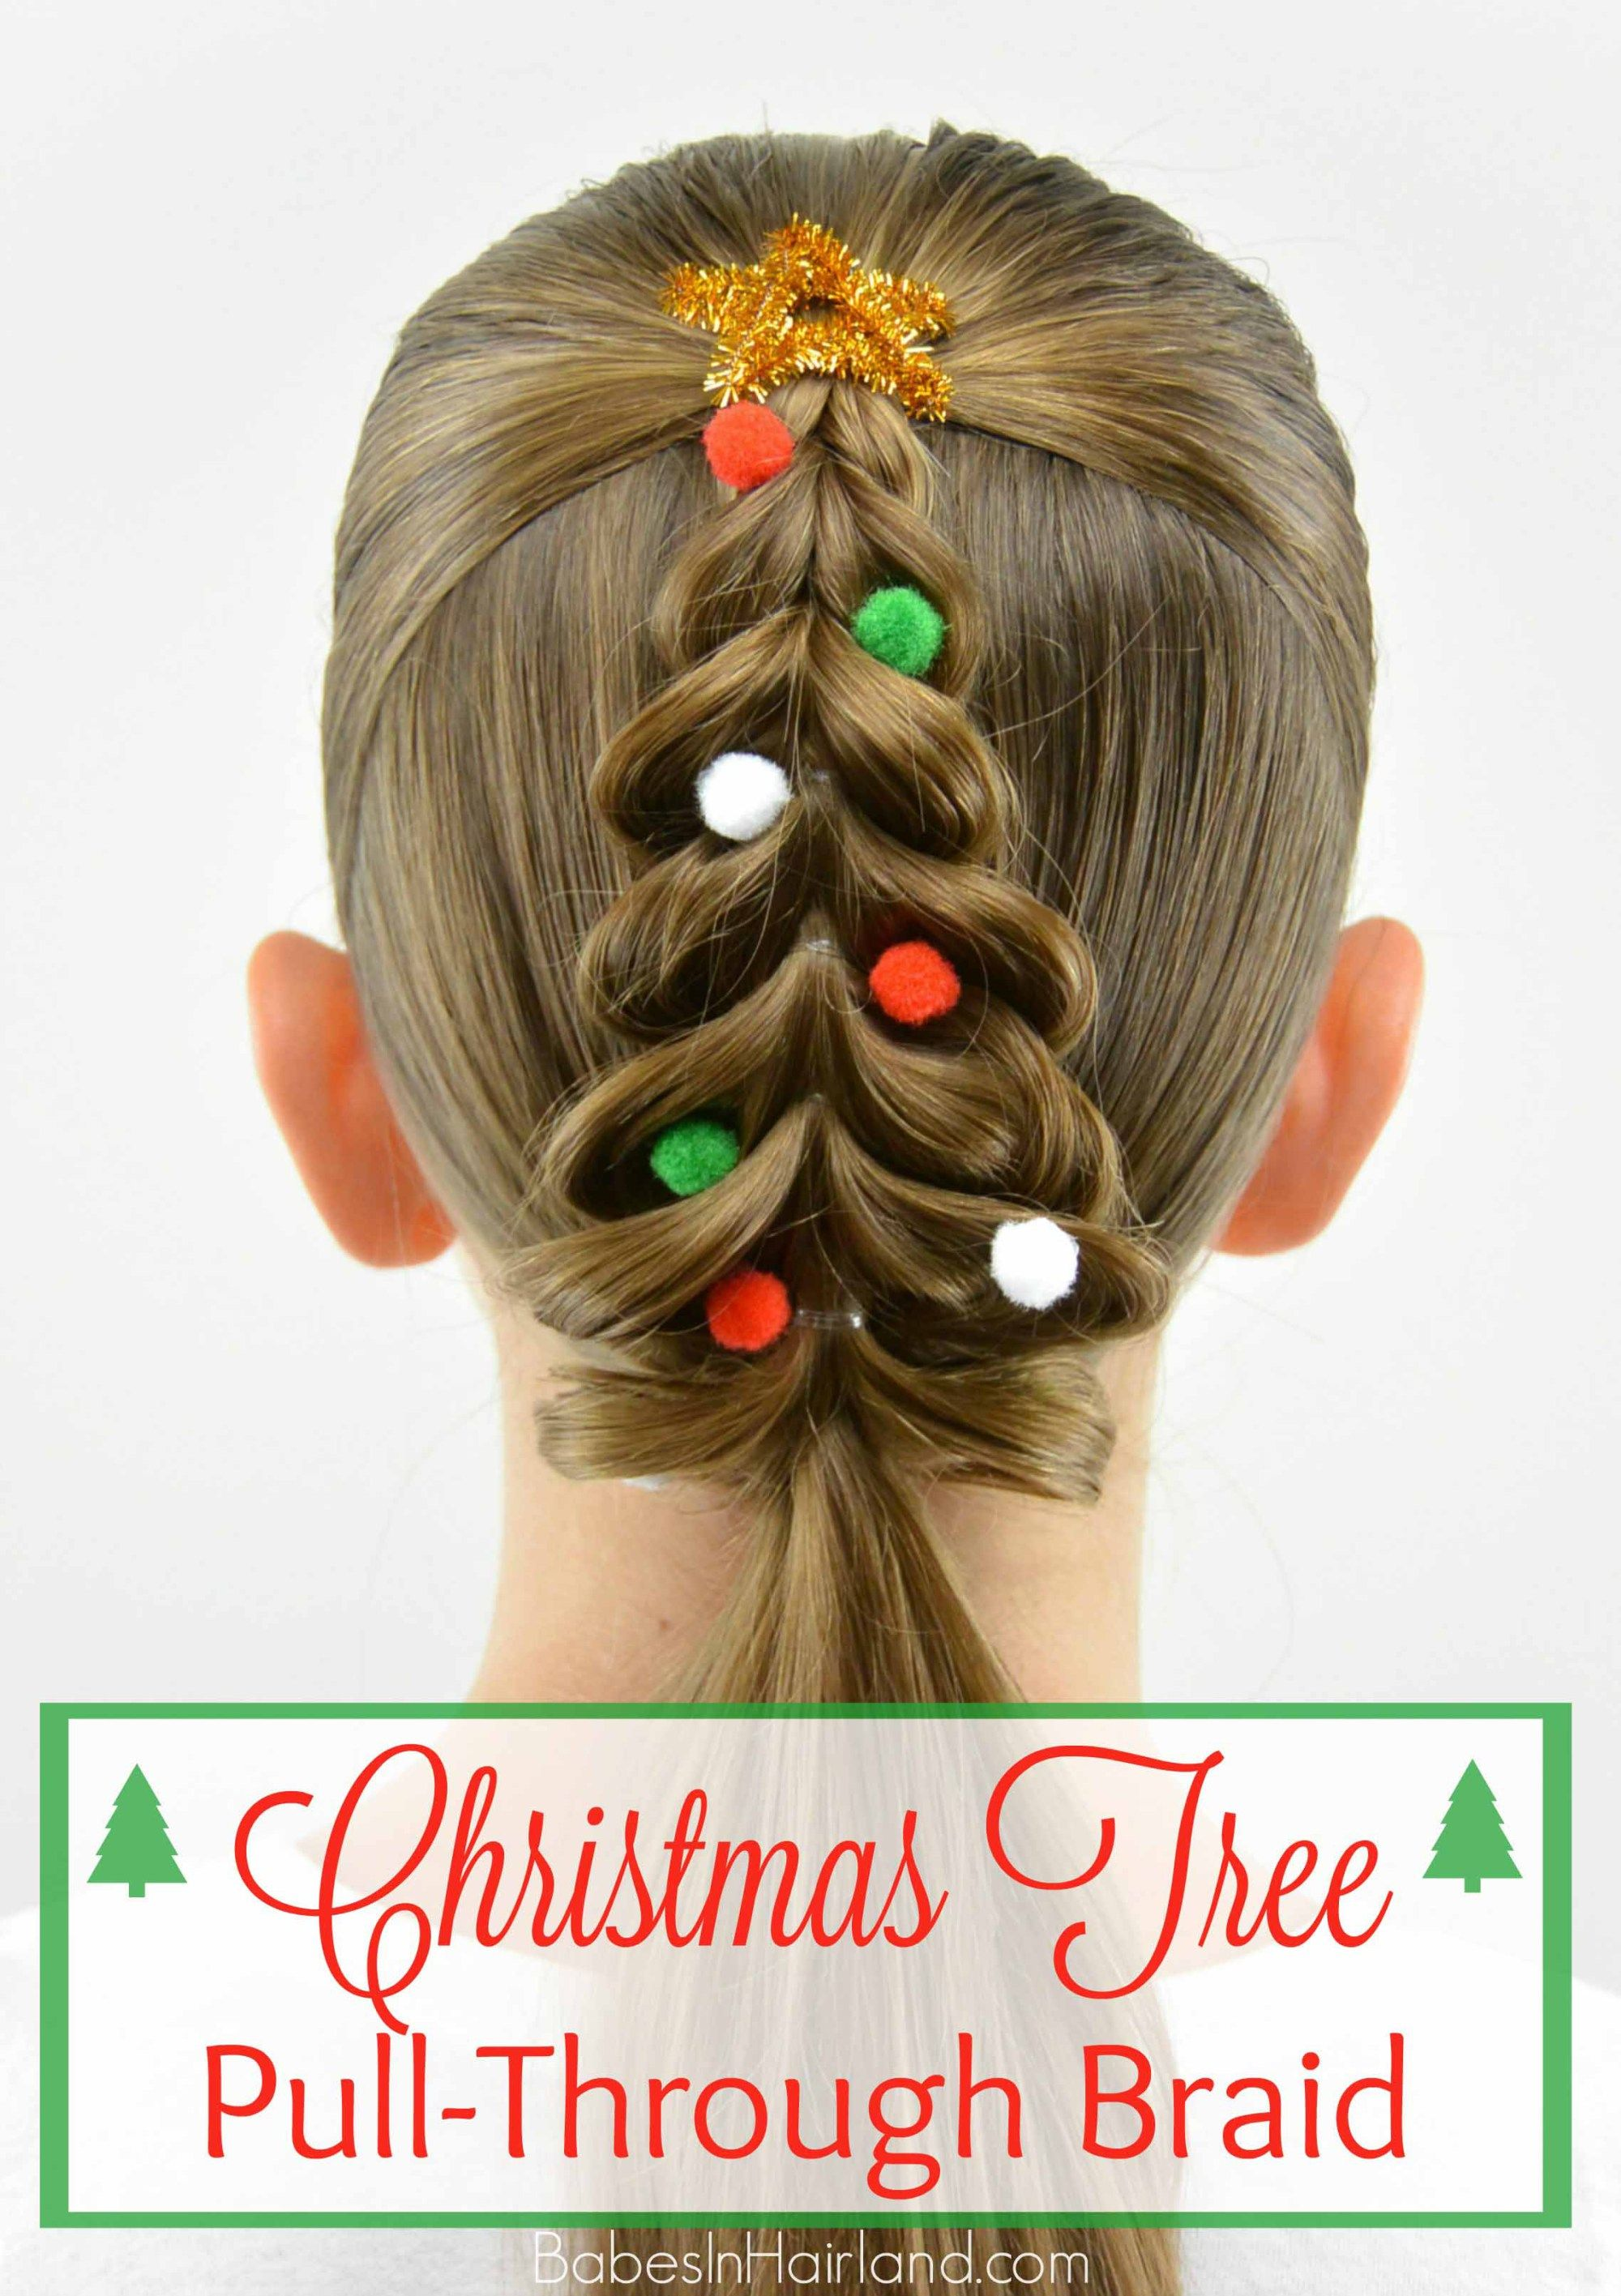 Snowman Hairstyle For Crazy Hair Day Or Christmas Kids Hairstyles Cool Braid Hairstyles Hair Styles